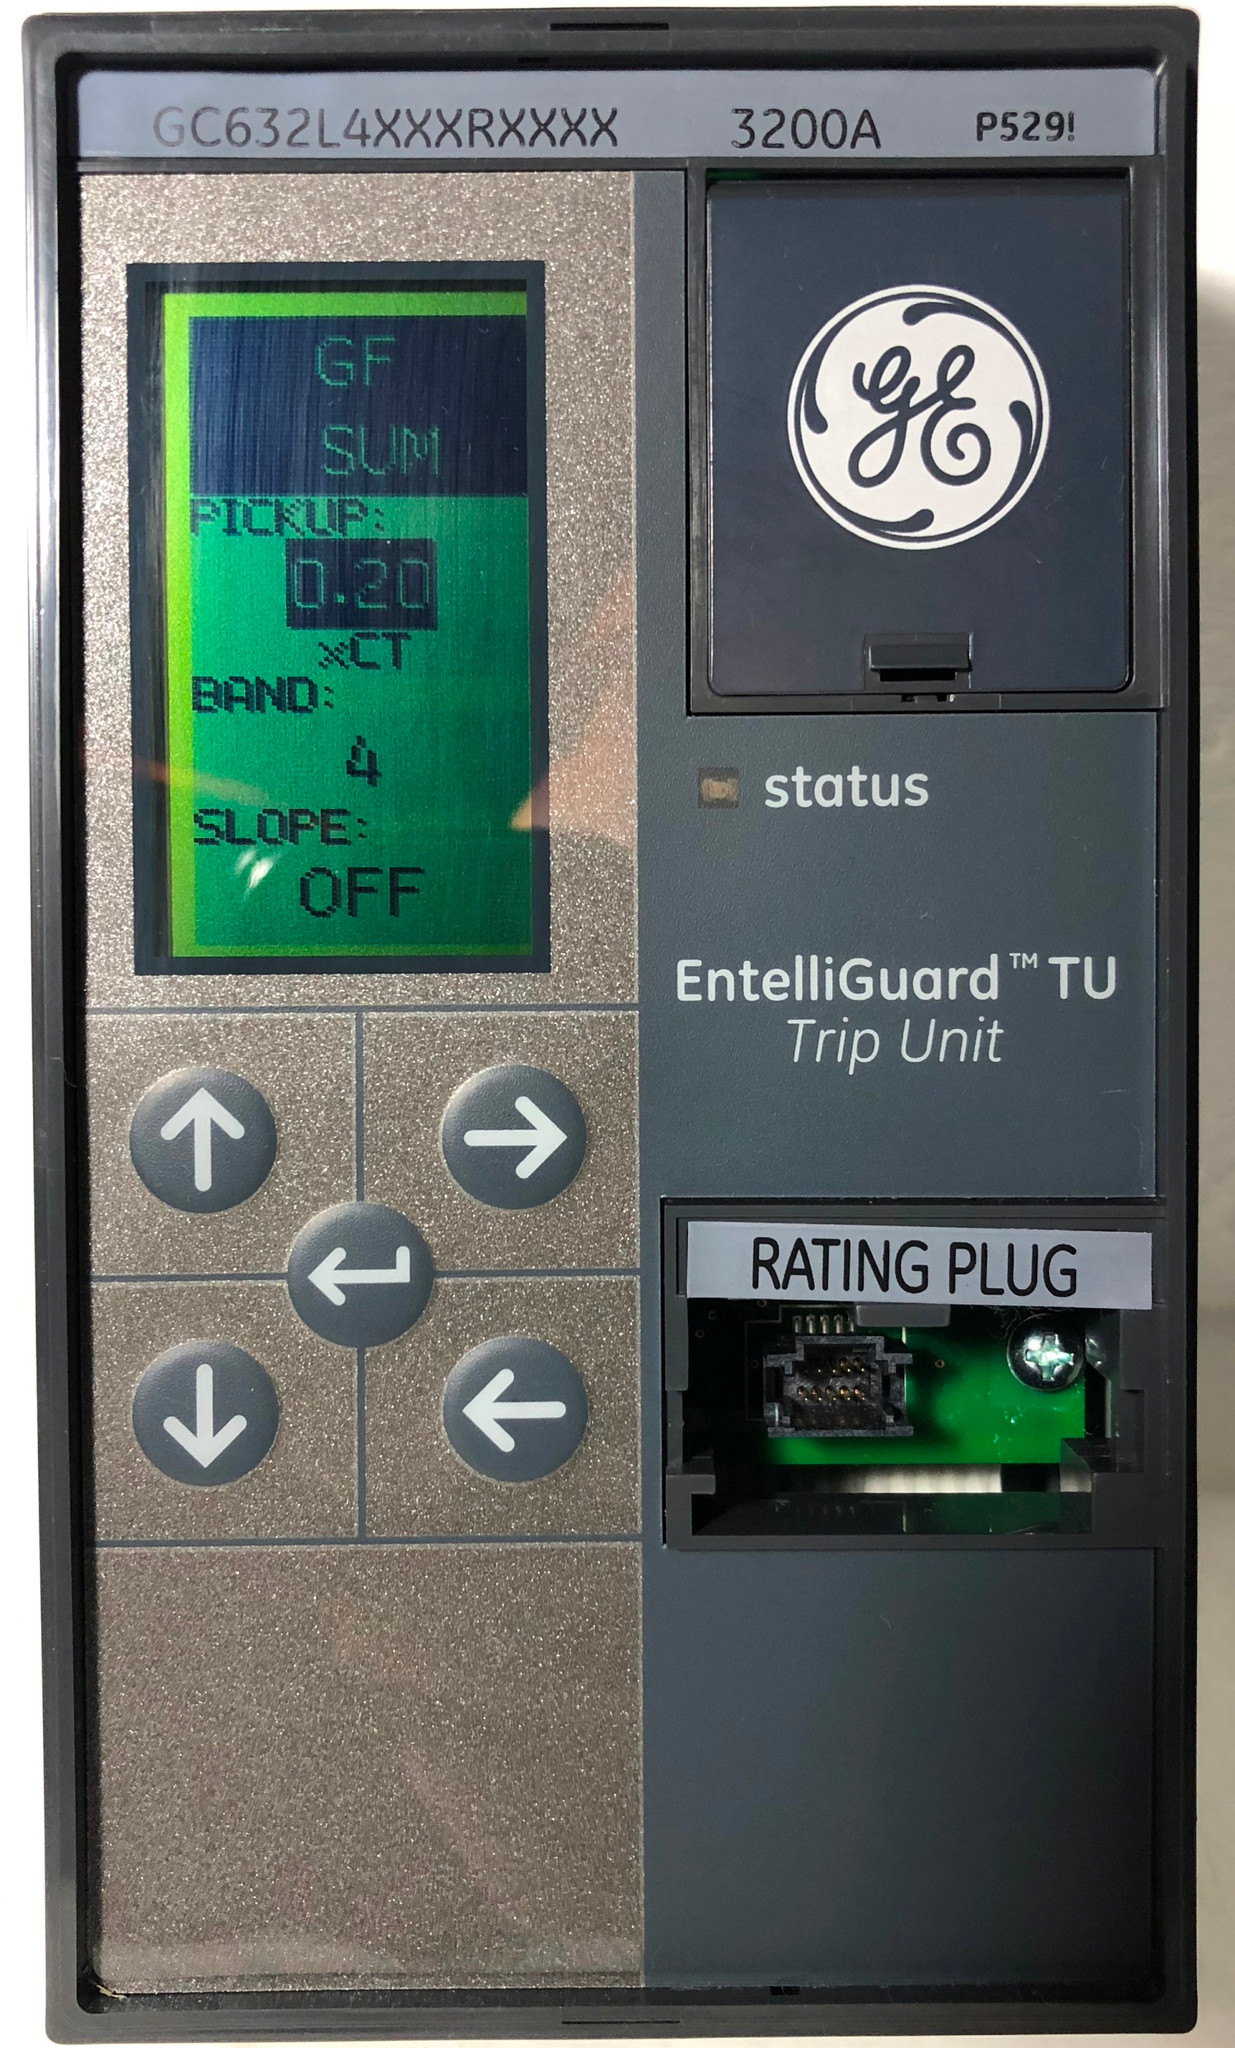 Ge Gc632l4xxxrxxxx 3200a Entelliguard Tu Trip Unit General Electric Trippingcircuitbreakerpaneljpg Https D3d71ba2asa5ozcloudfrontnet 12014161 Images Em3128